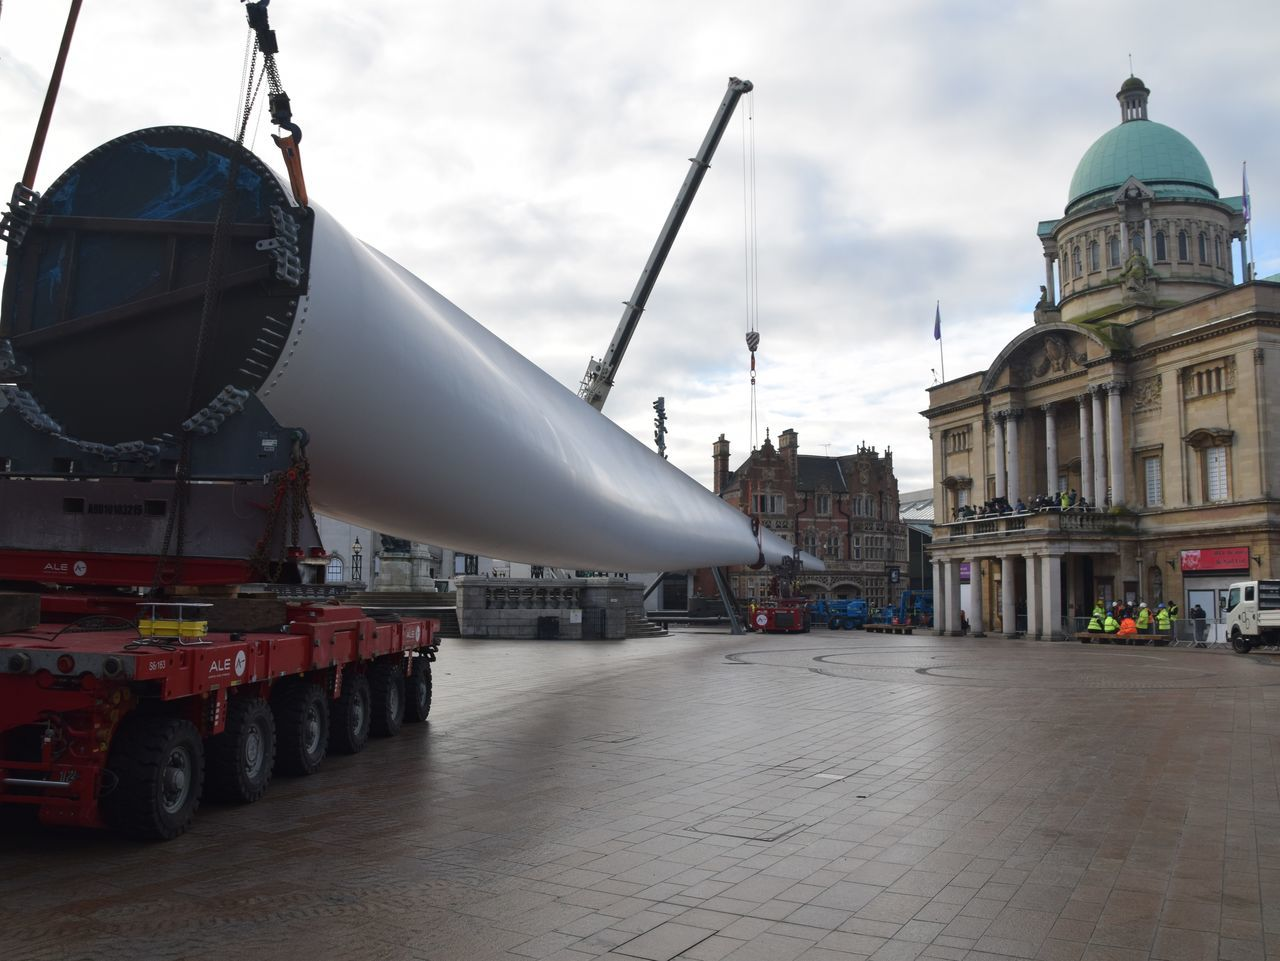 Siemens wind turbine blade is lifted into position in Hull's Queen Victoria Square (08/01/2017) during Hull 2017 City Of Culture Architecture Building Exterior City Hull Hull 2017 Hull City Of Culture 2017 Hull2017 Industry Outdoors Street Turbine Wind Turbine Working